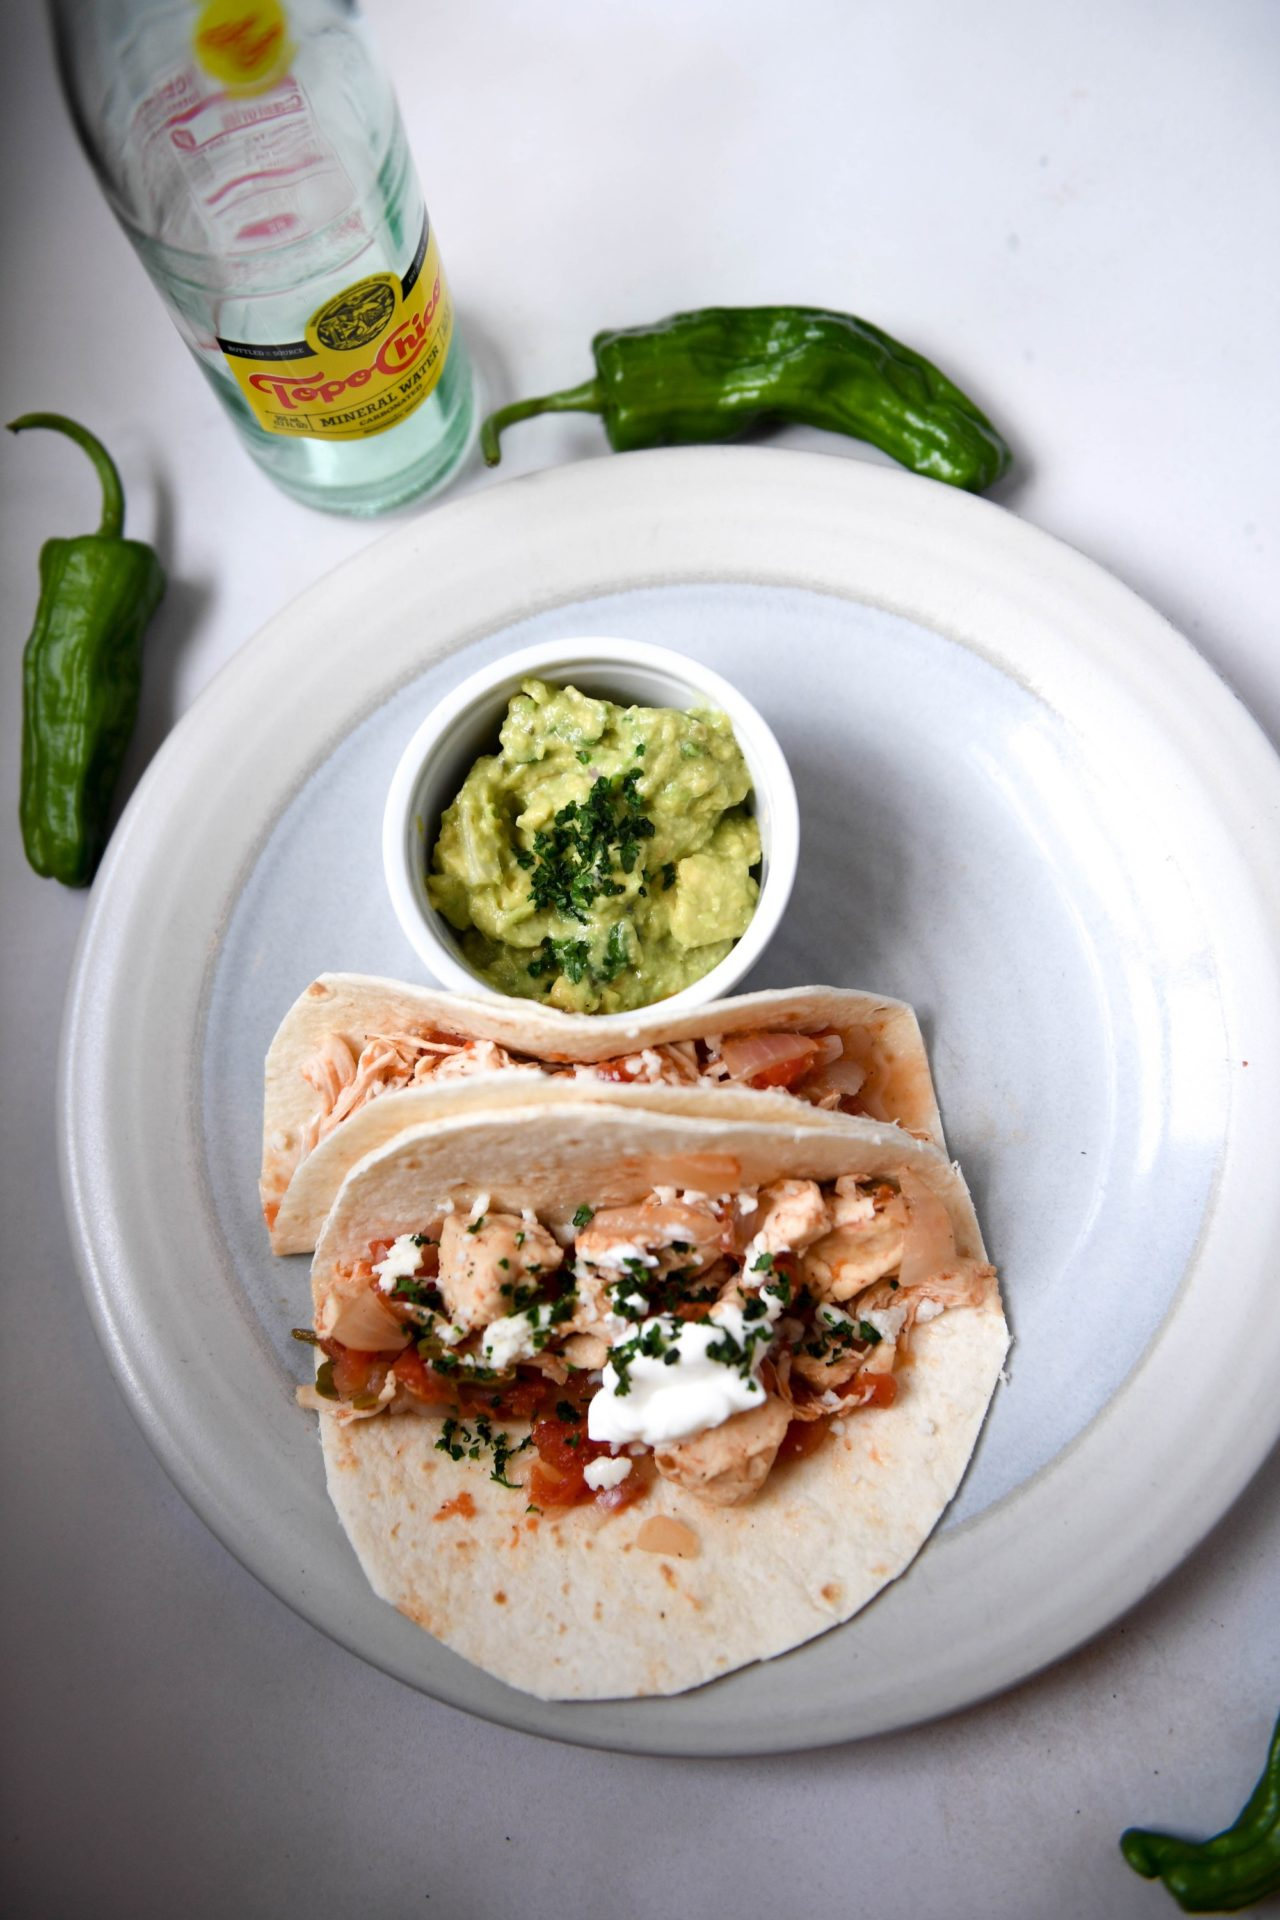 Spicy Chicken Tinga Tacos With Guacamole and Queso Fresco - Low Carb 5